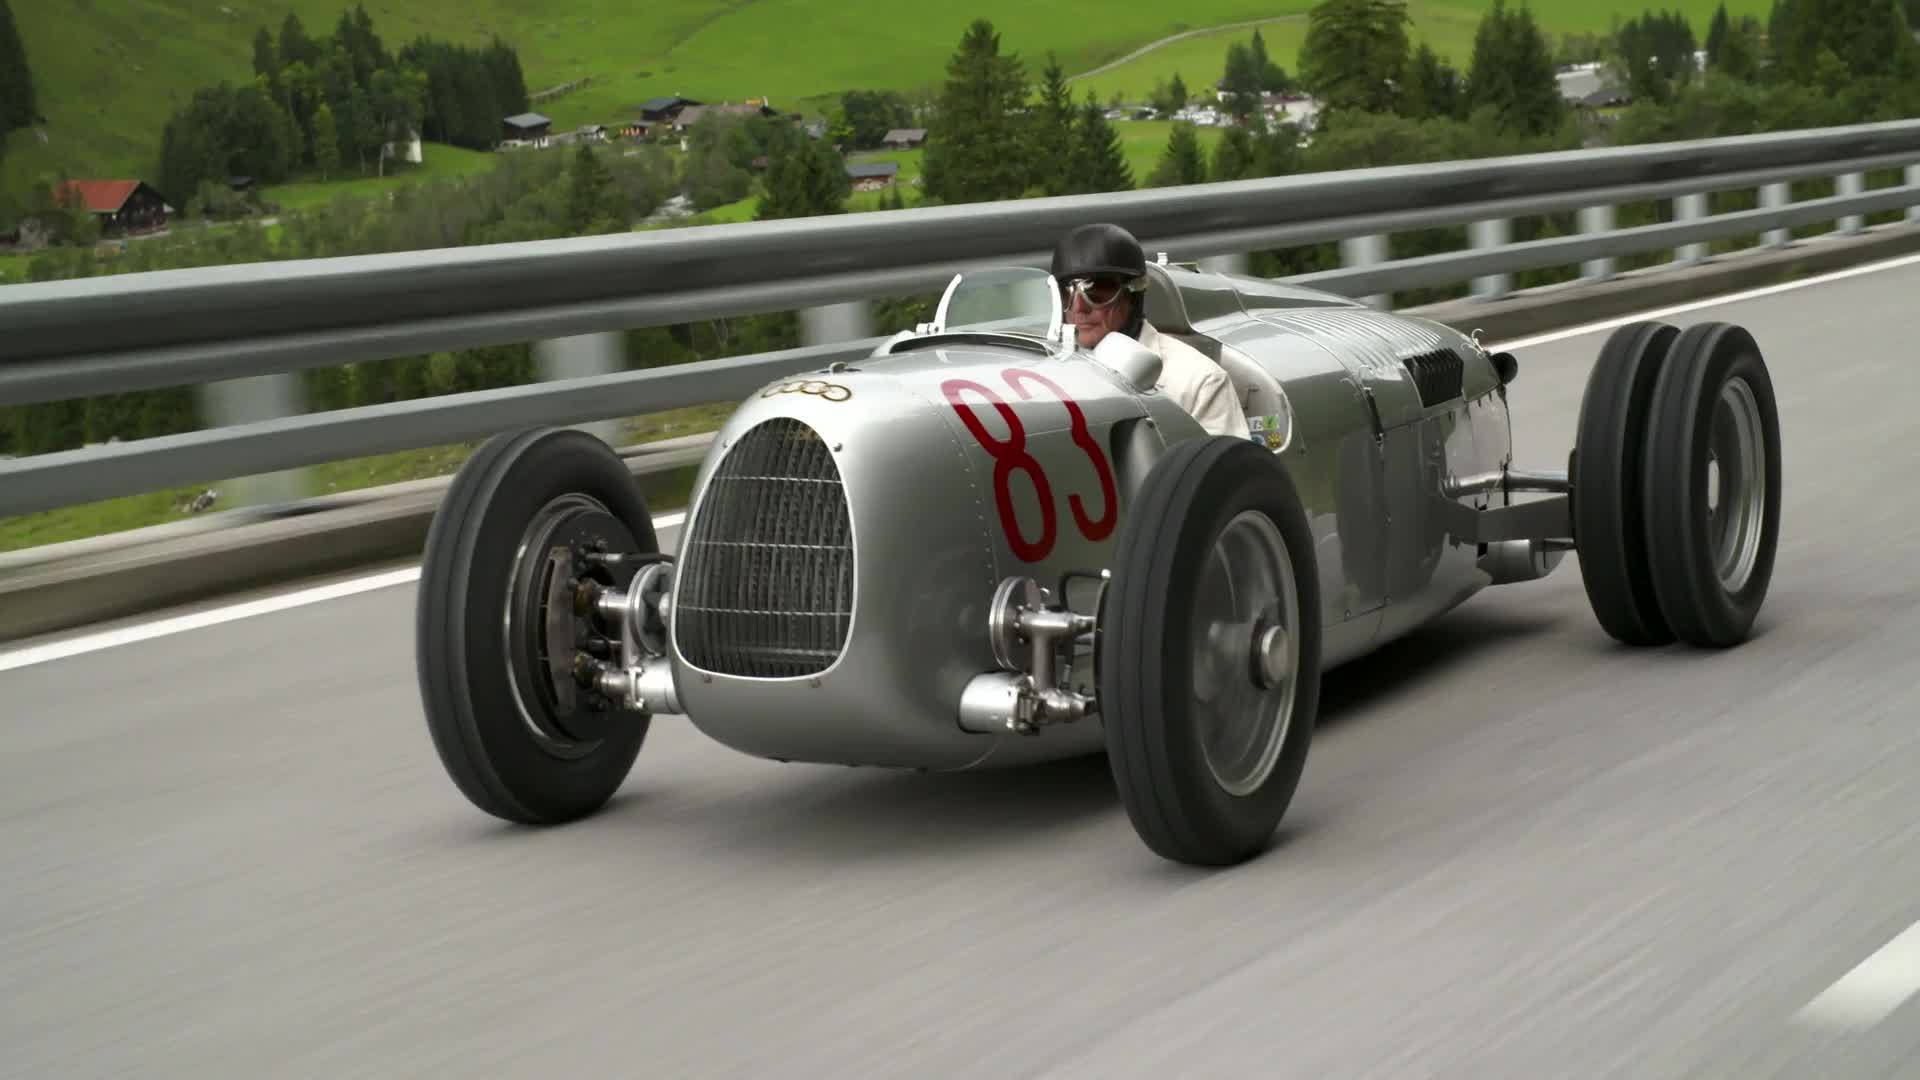 Großglockner Grand Prix 2017 with replica of the Auto Union Type C